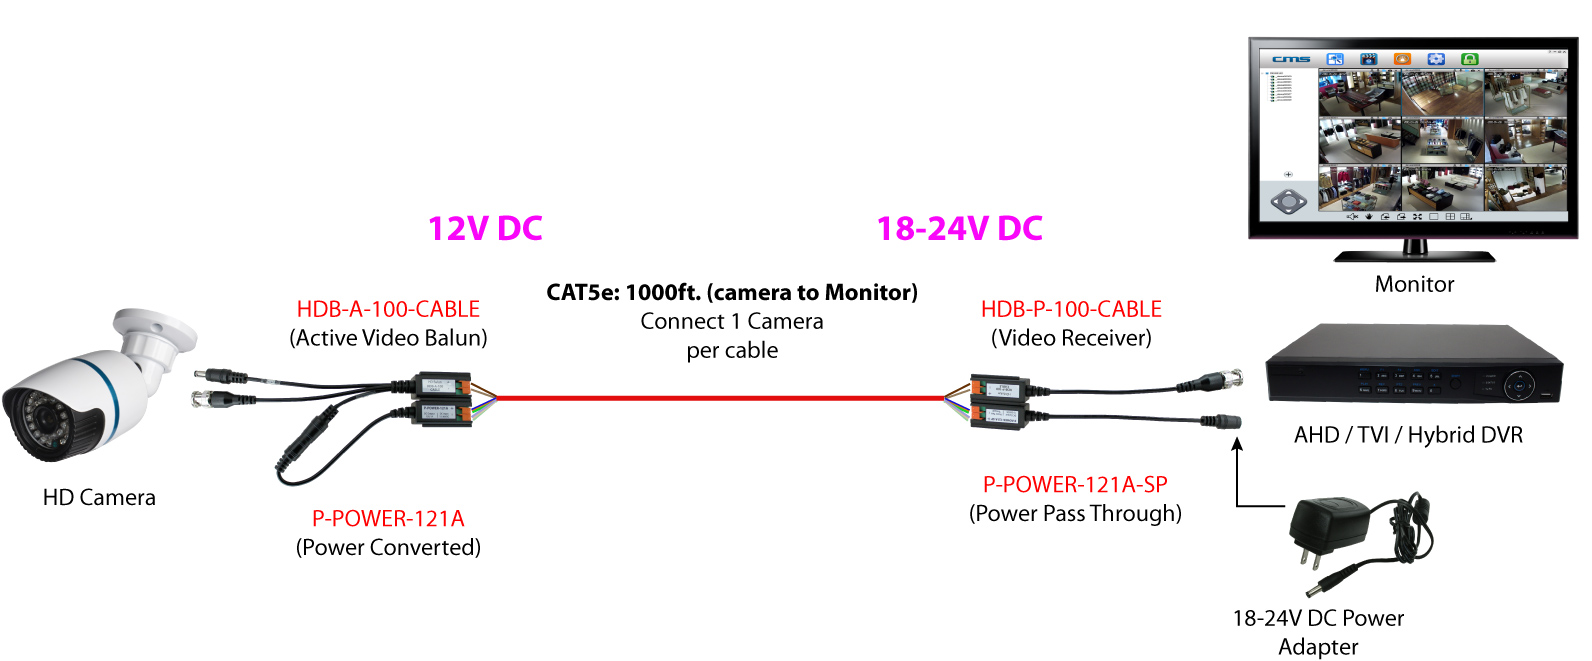 hight resolution of use at least 1 pair of wires in the cable run to transmit power an example diagram is shown below